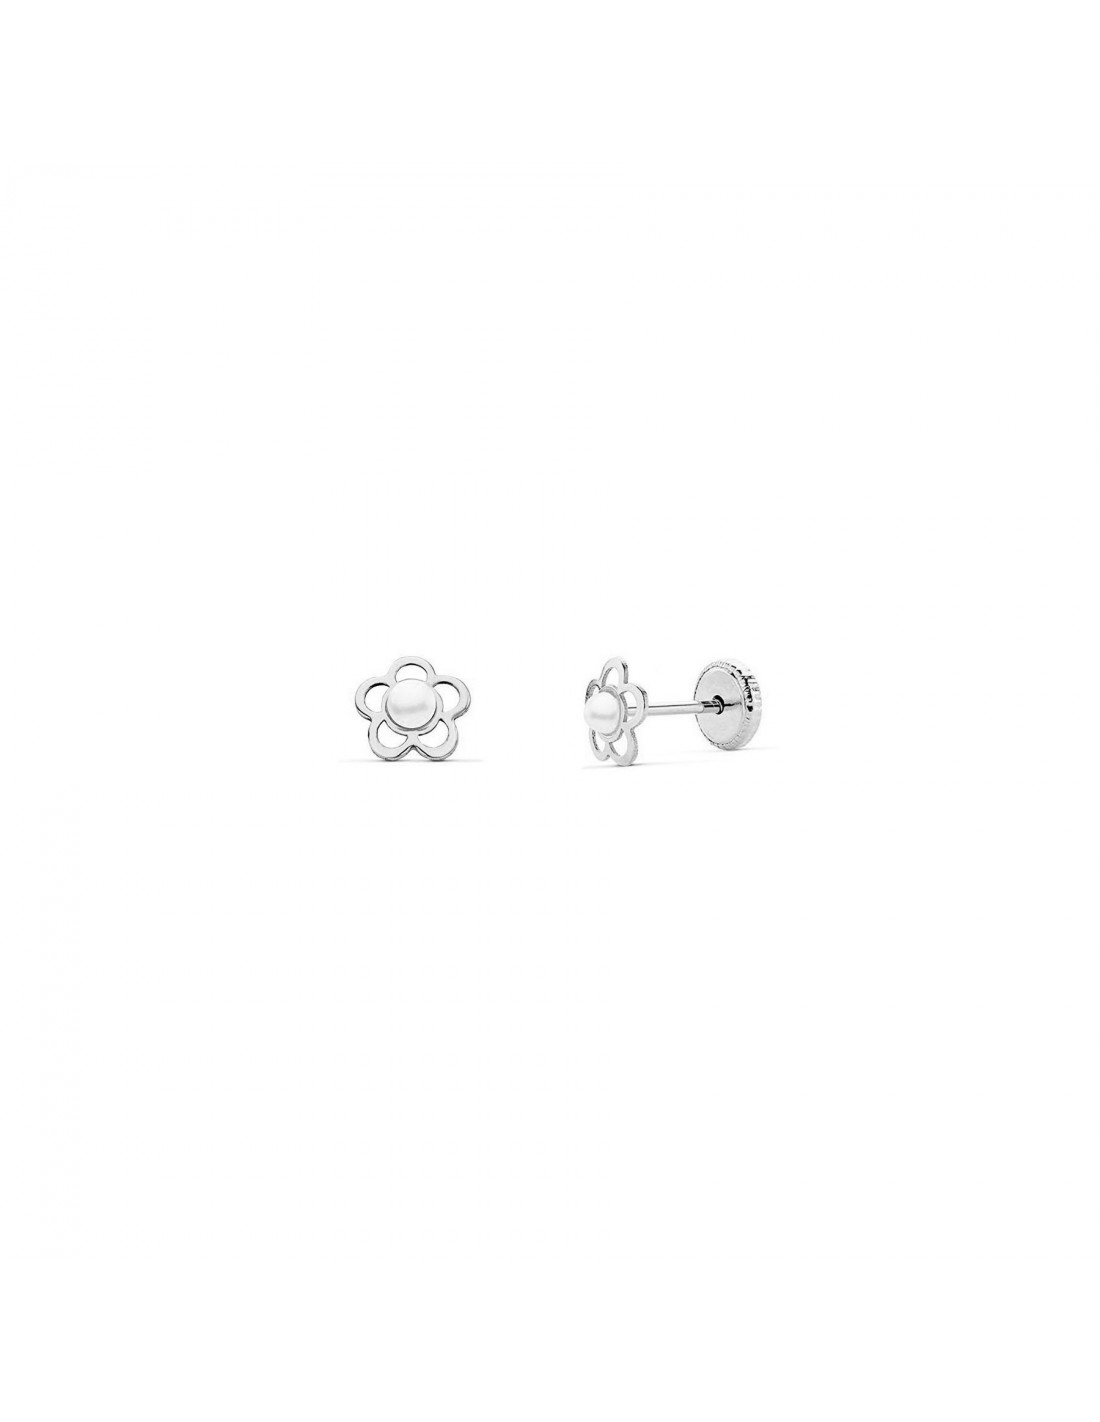 boucles d 39 oreilles enfant fleur avec perle or blanc 9 carats. Black Bedroom Furniture Sets. Home Design Ideas